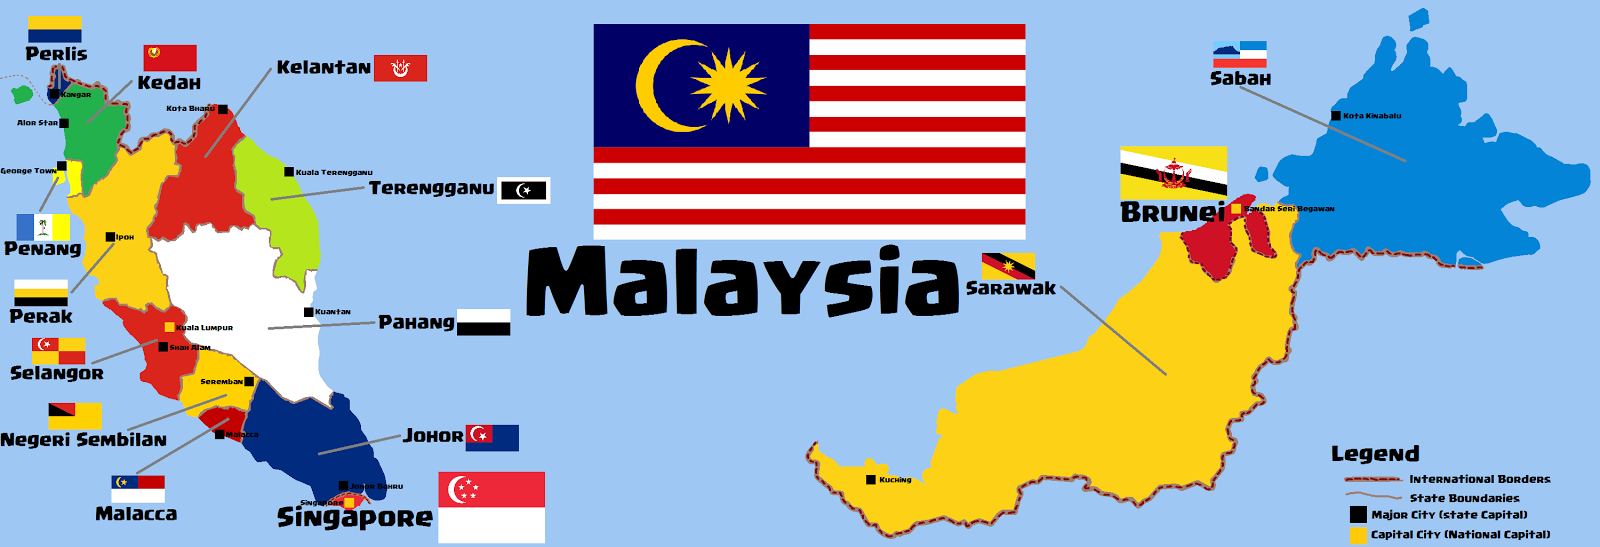 world map singapore and malaysia relationship